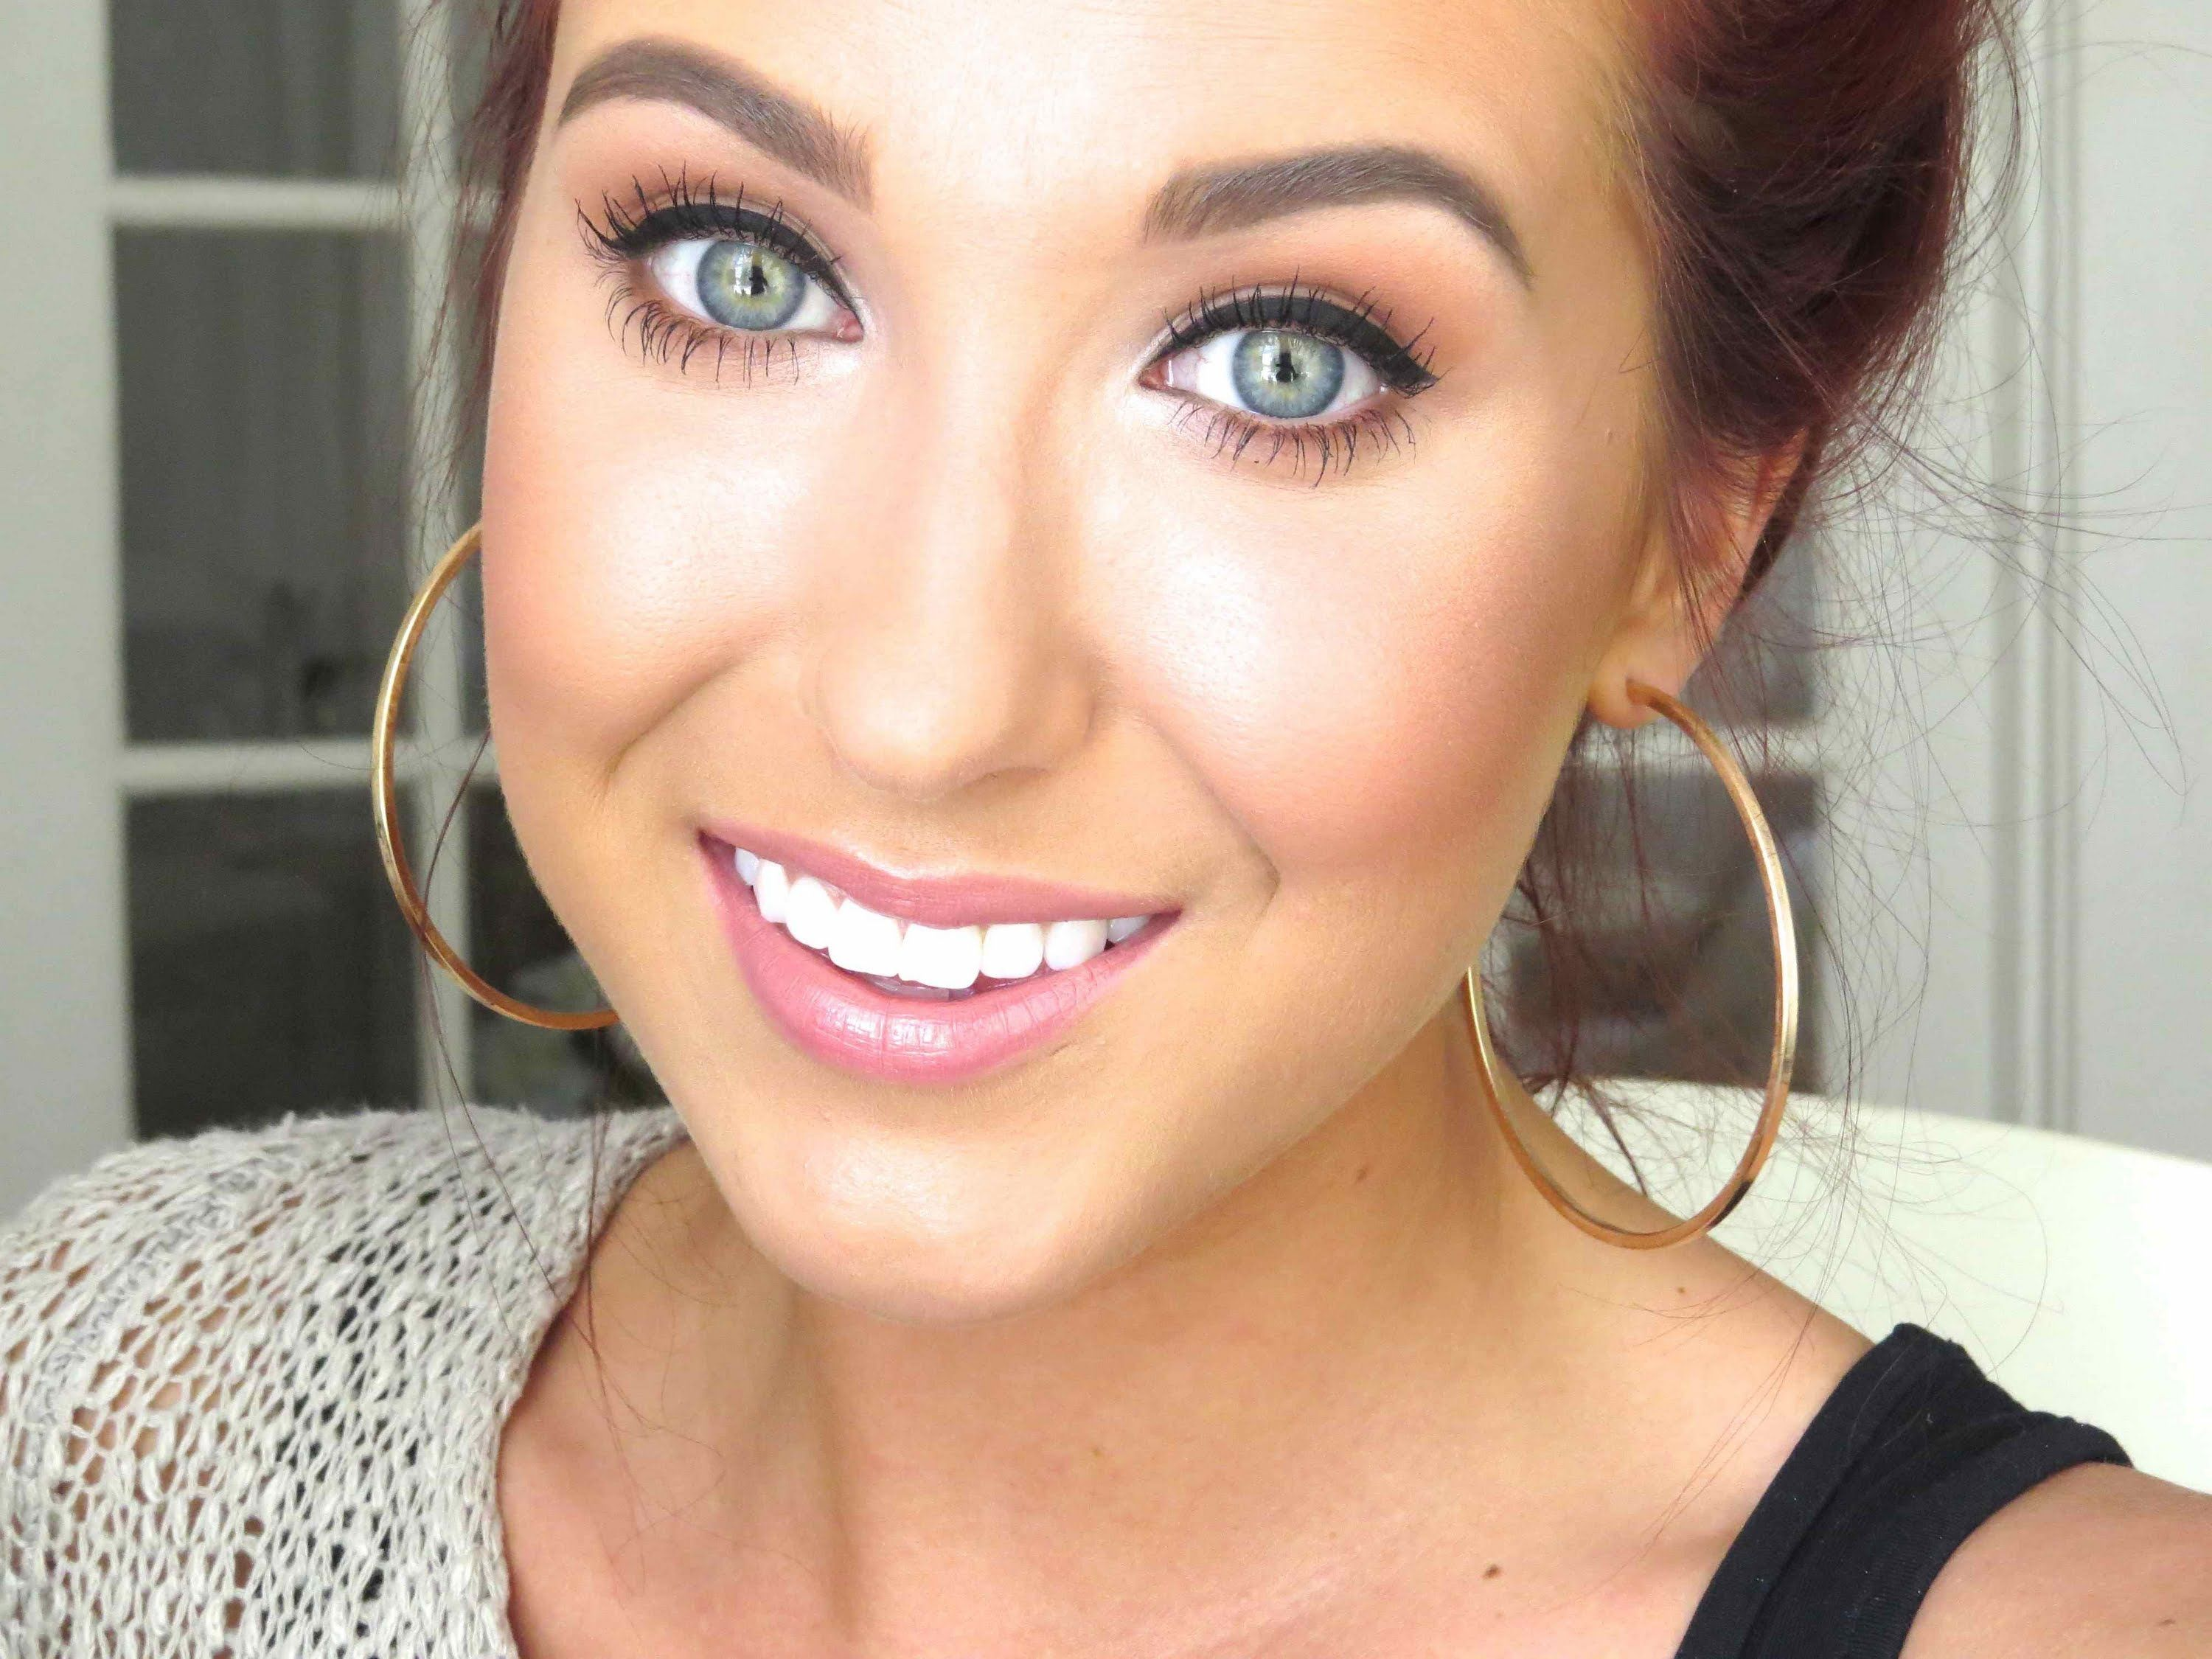 Foundation concealer routine hair makeup pinterest this is a great tutorial on how to apply foundation and concealer foundation concealer routine by jacklyn hill baditri Image collections